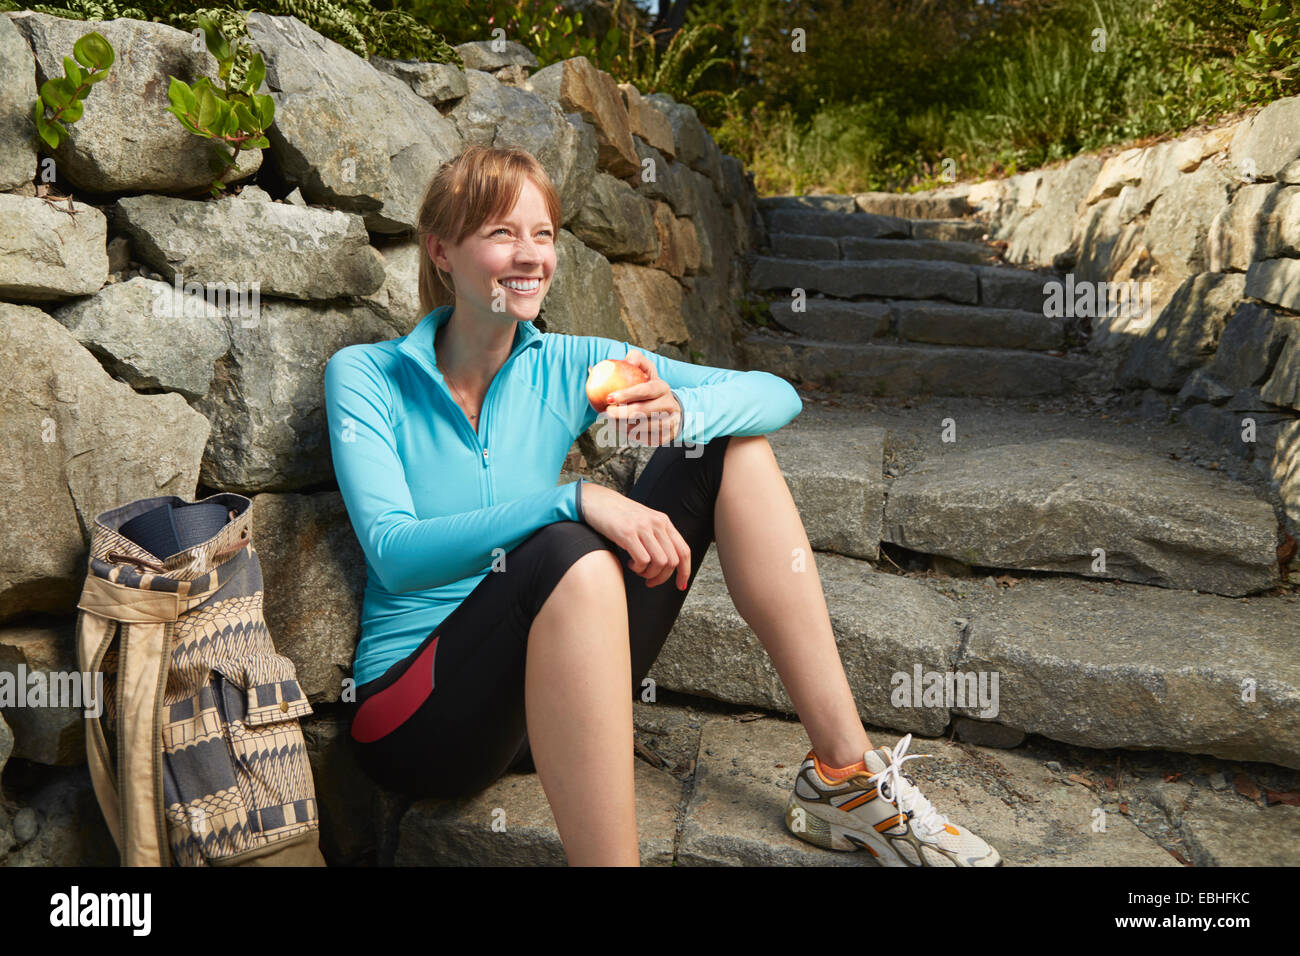 Mid adult female runner taking a break in park eating an apple - Stock Image